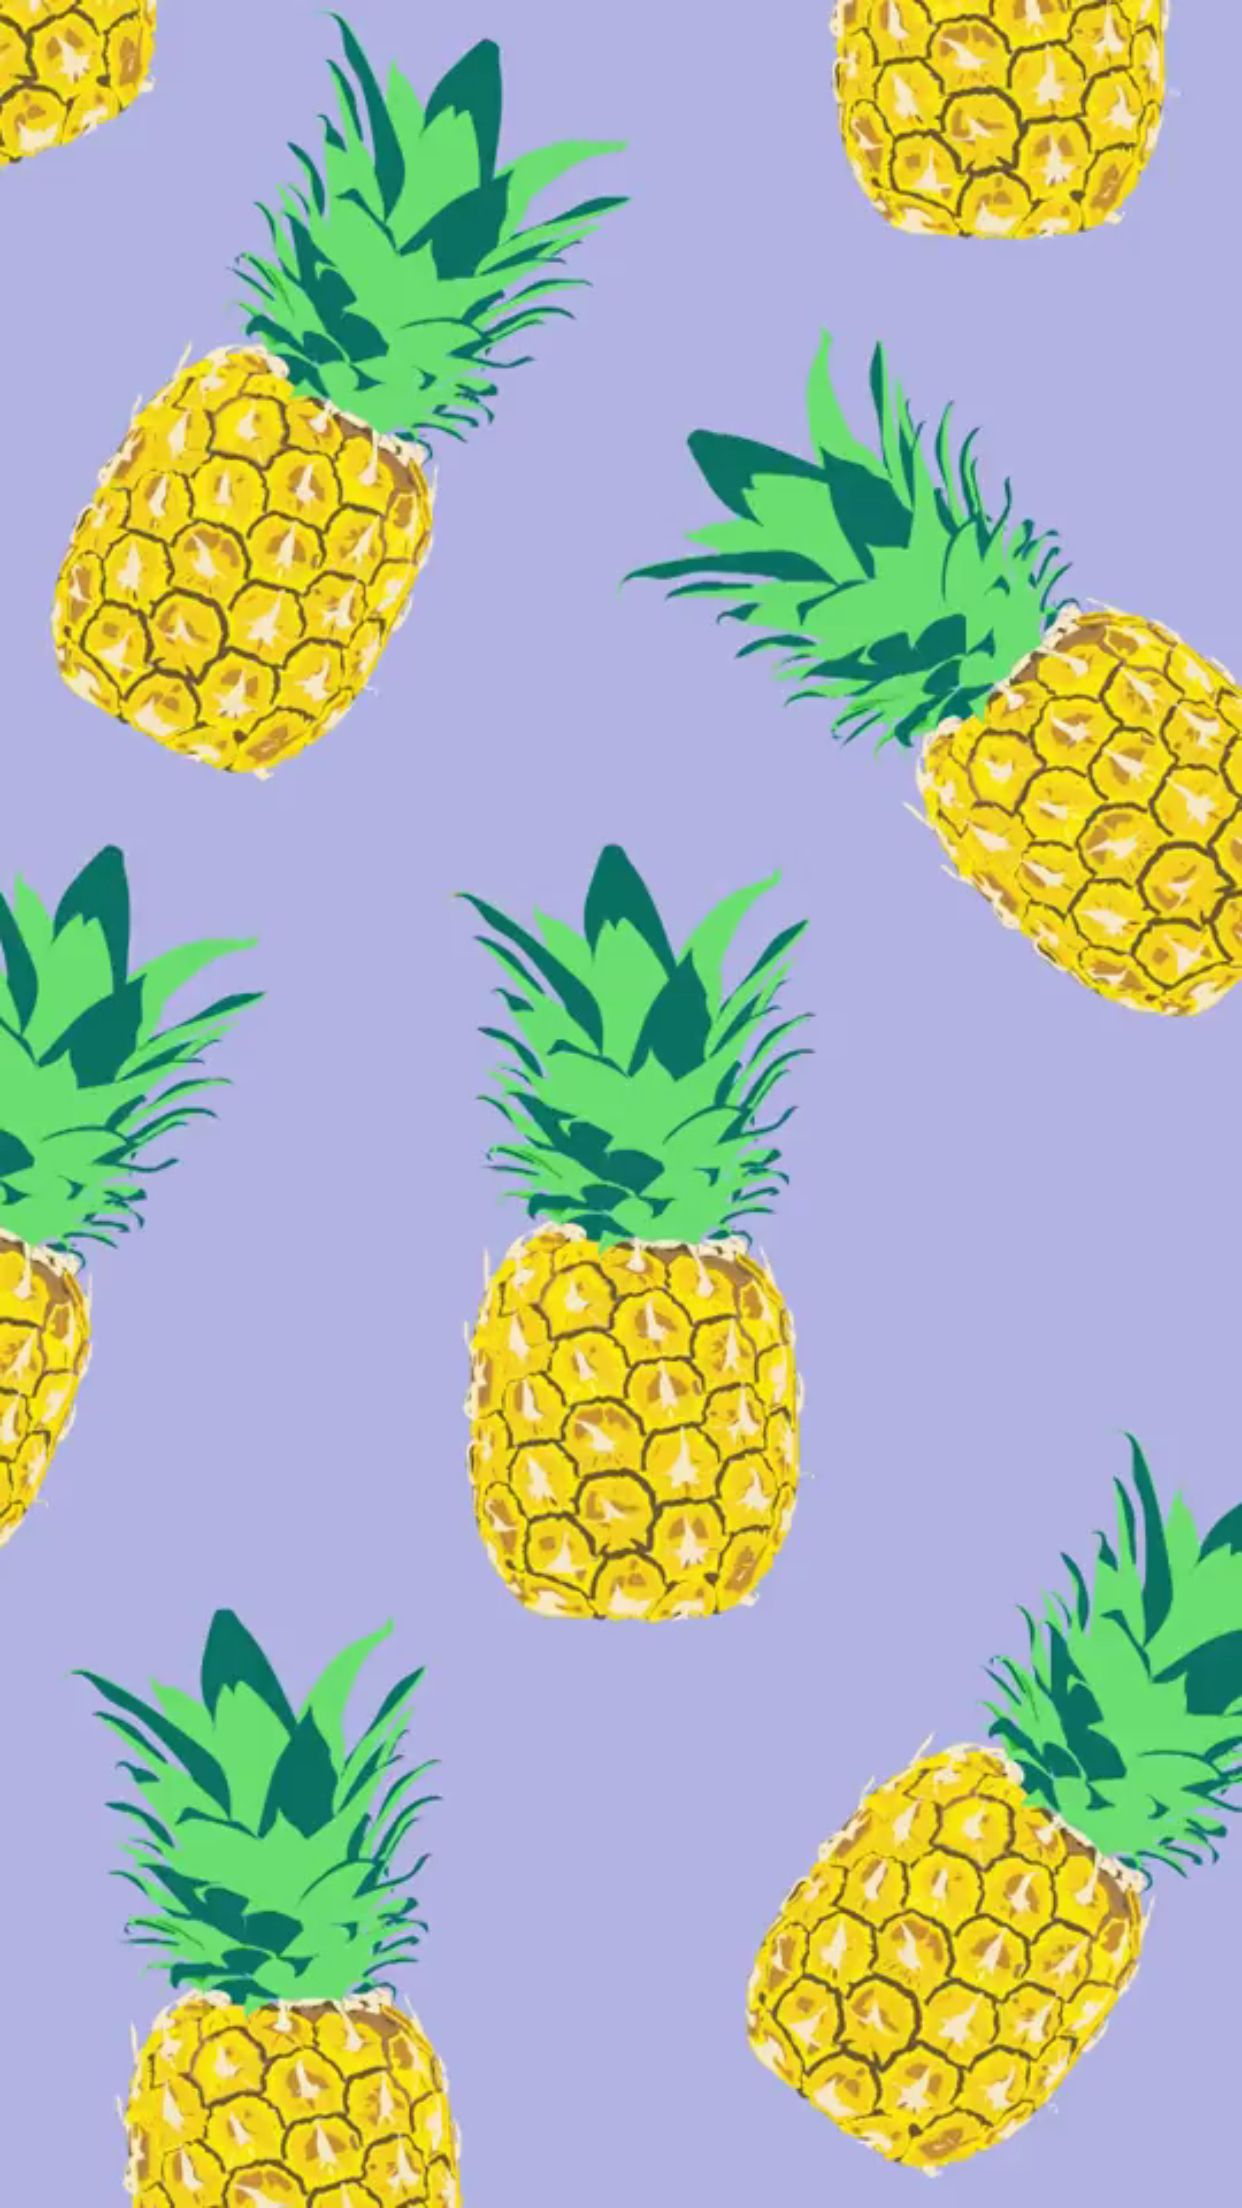 Amazing Wallpaper Macbook Pineapple - cd64c9f53a0ee36cb549c5fbdf557184  Perfect Image Reference_866551.jpg